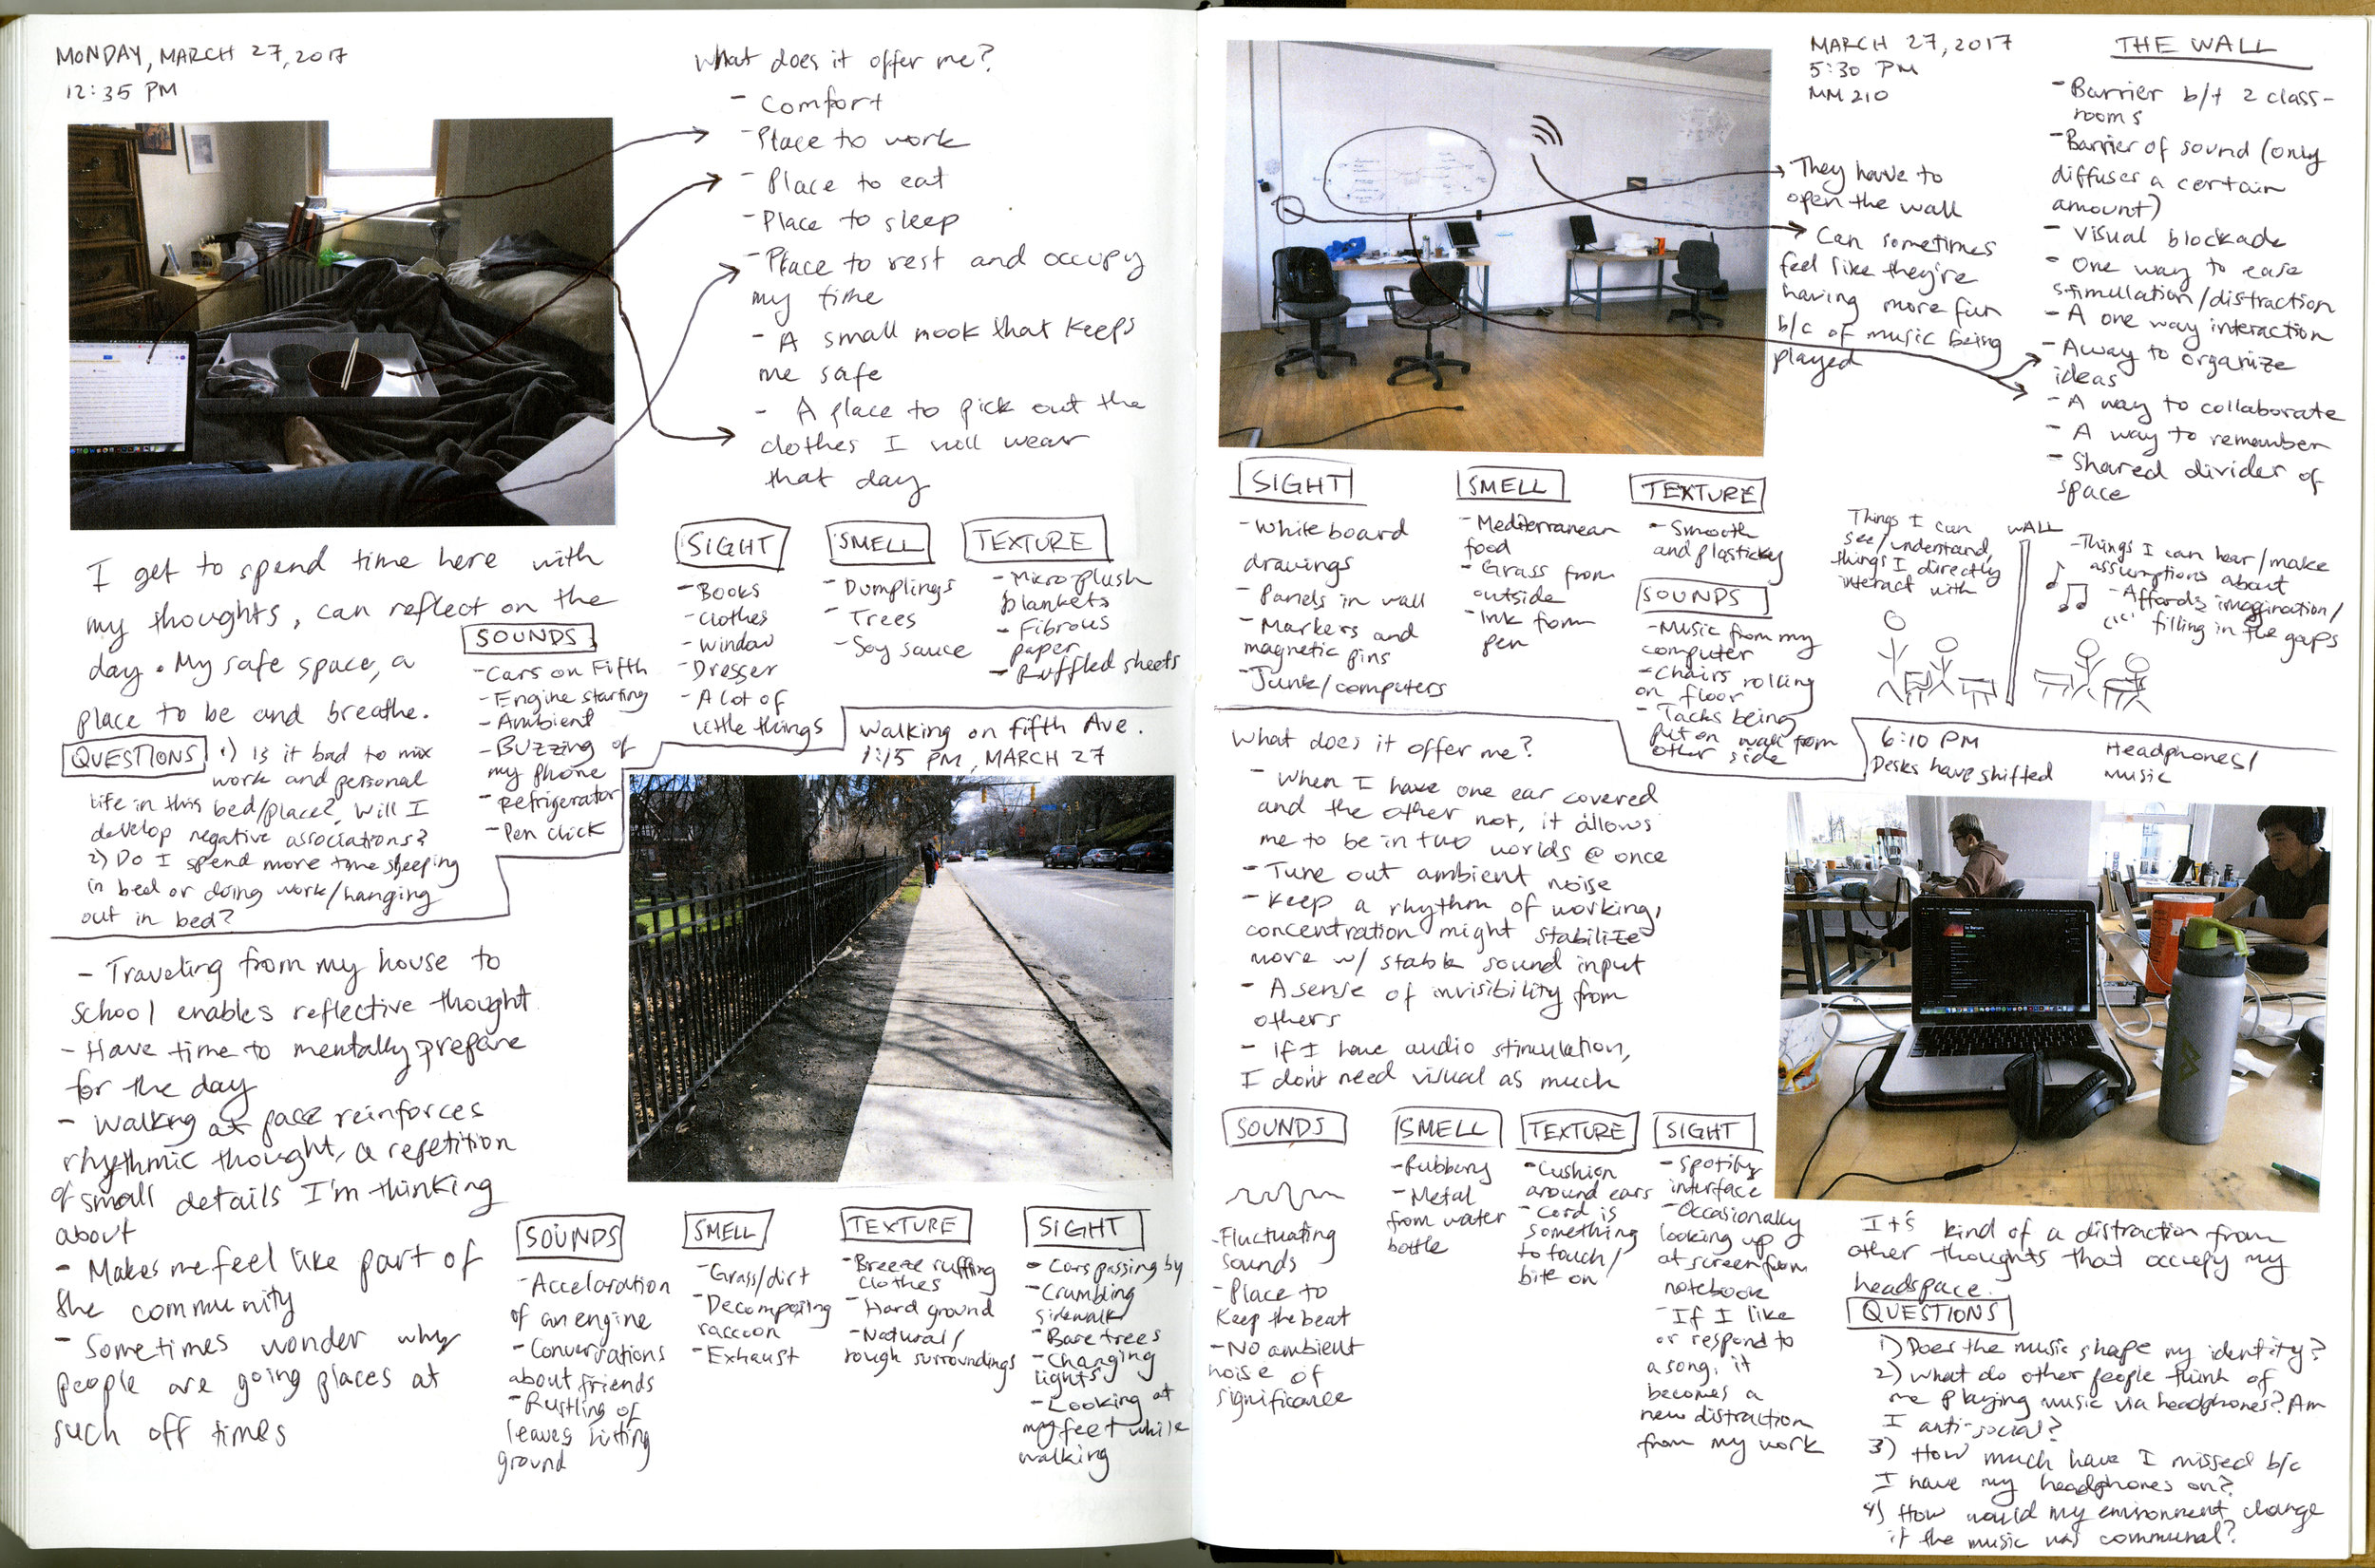 gilly_notes page 3-4.jpg